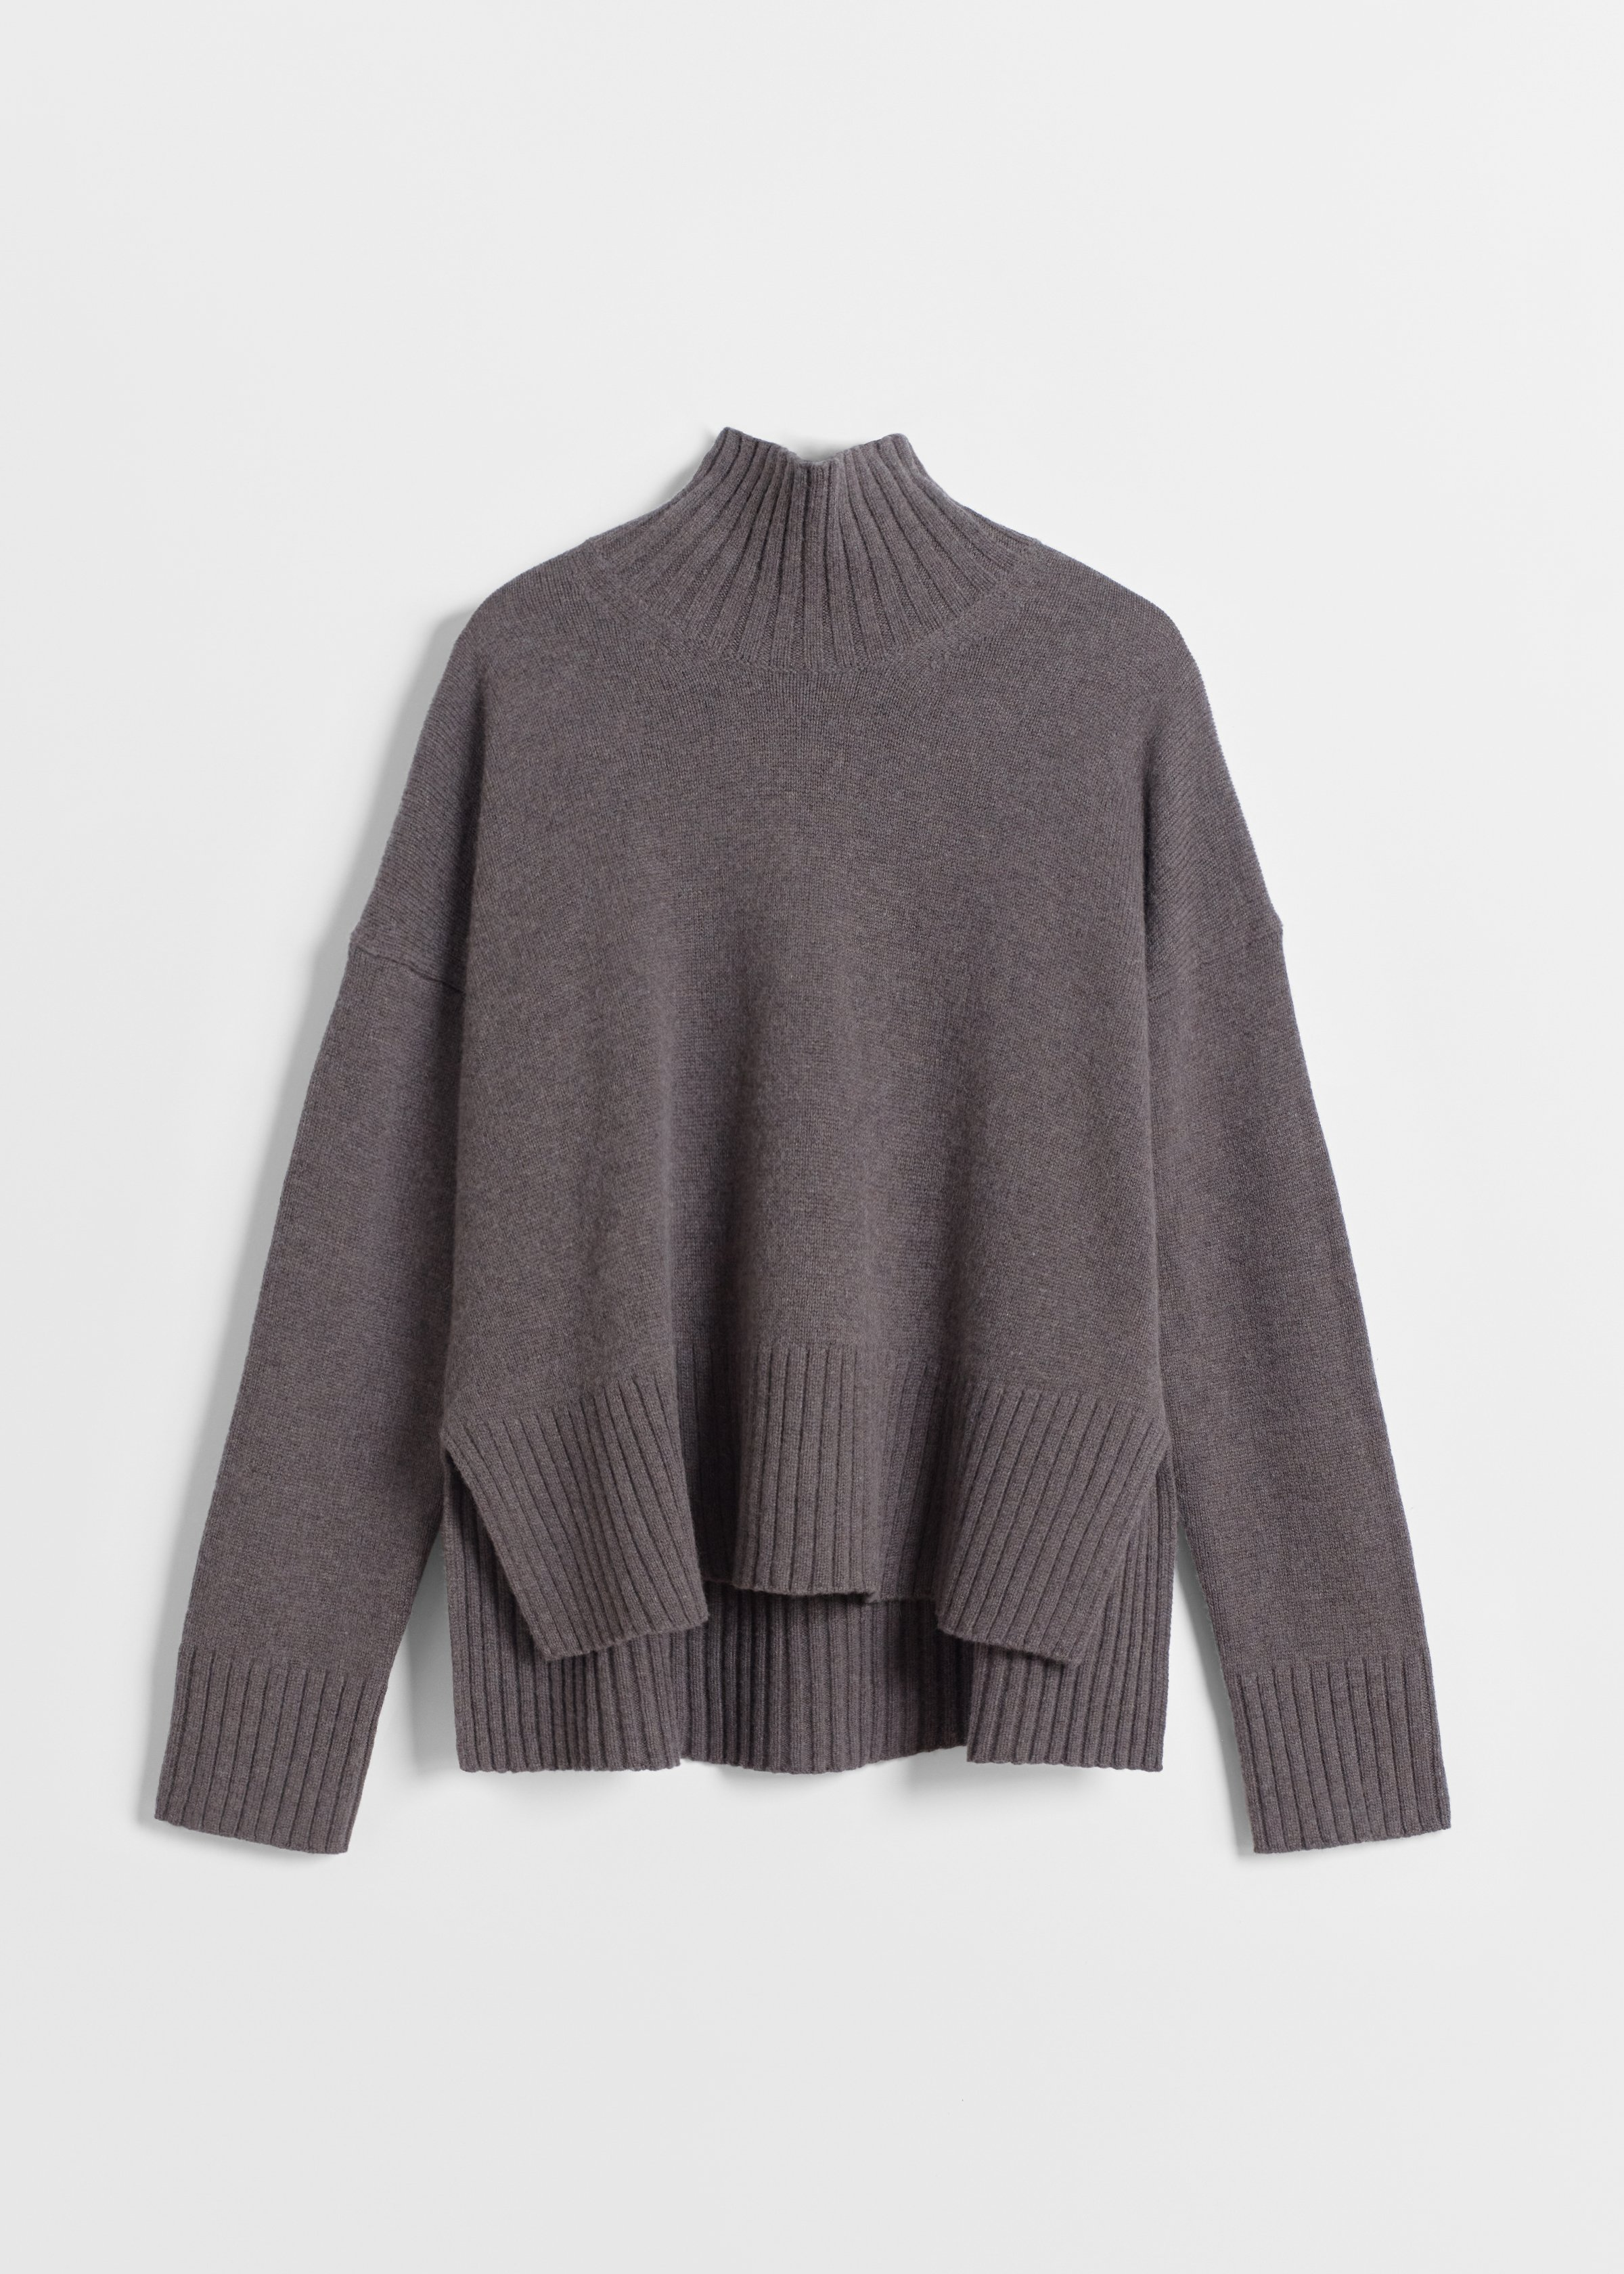 CO - High Neck Sweater in Wool Cashmere - Brown